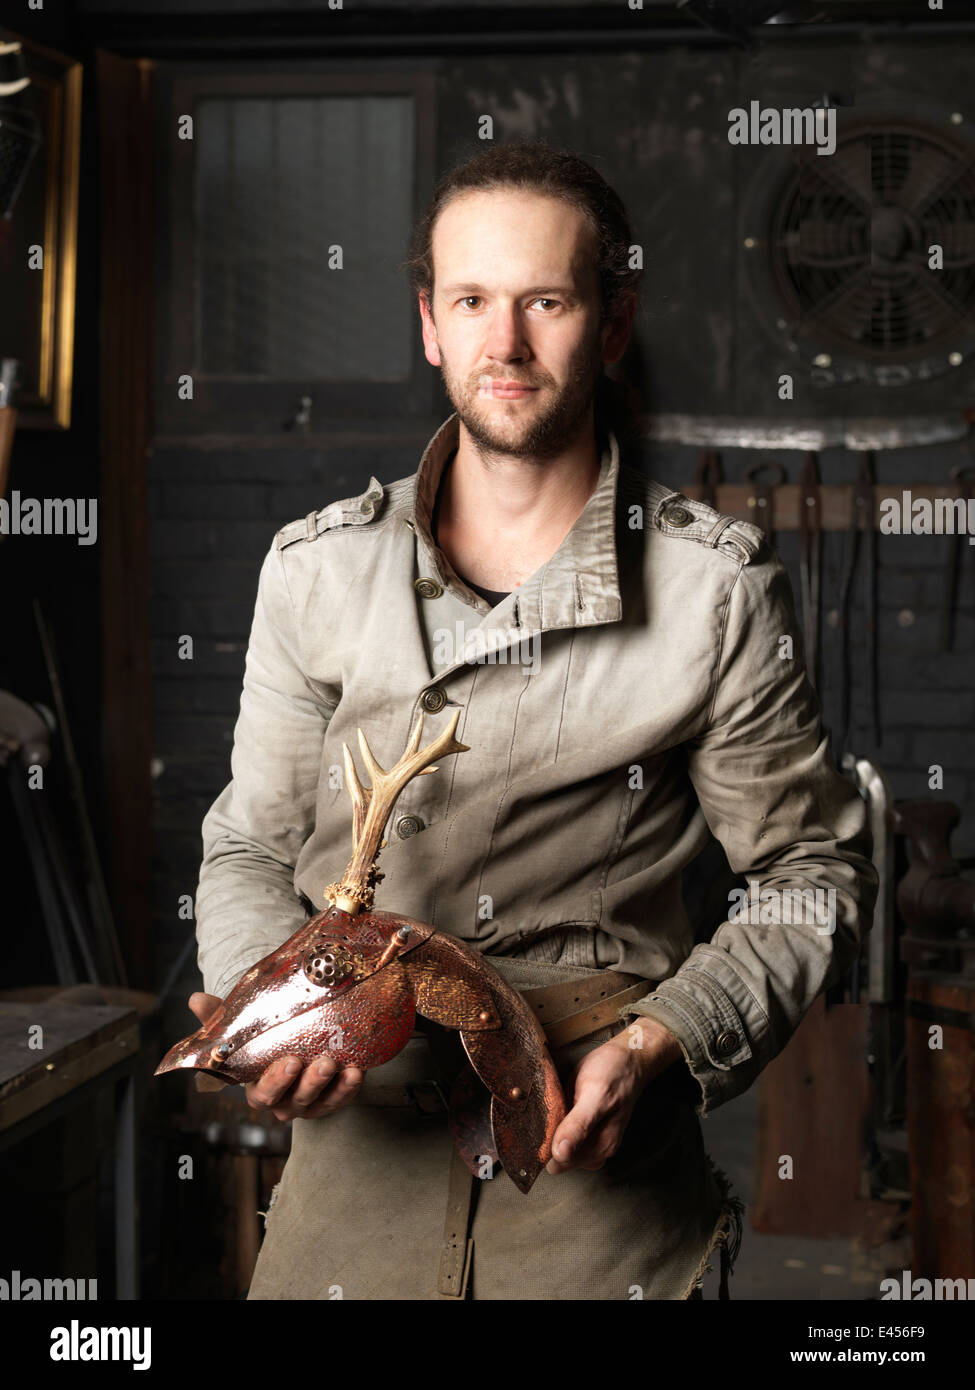 Portrait of blacksmith with a copper deer sculpture - Stock Image